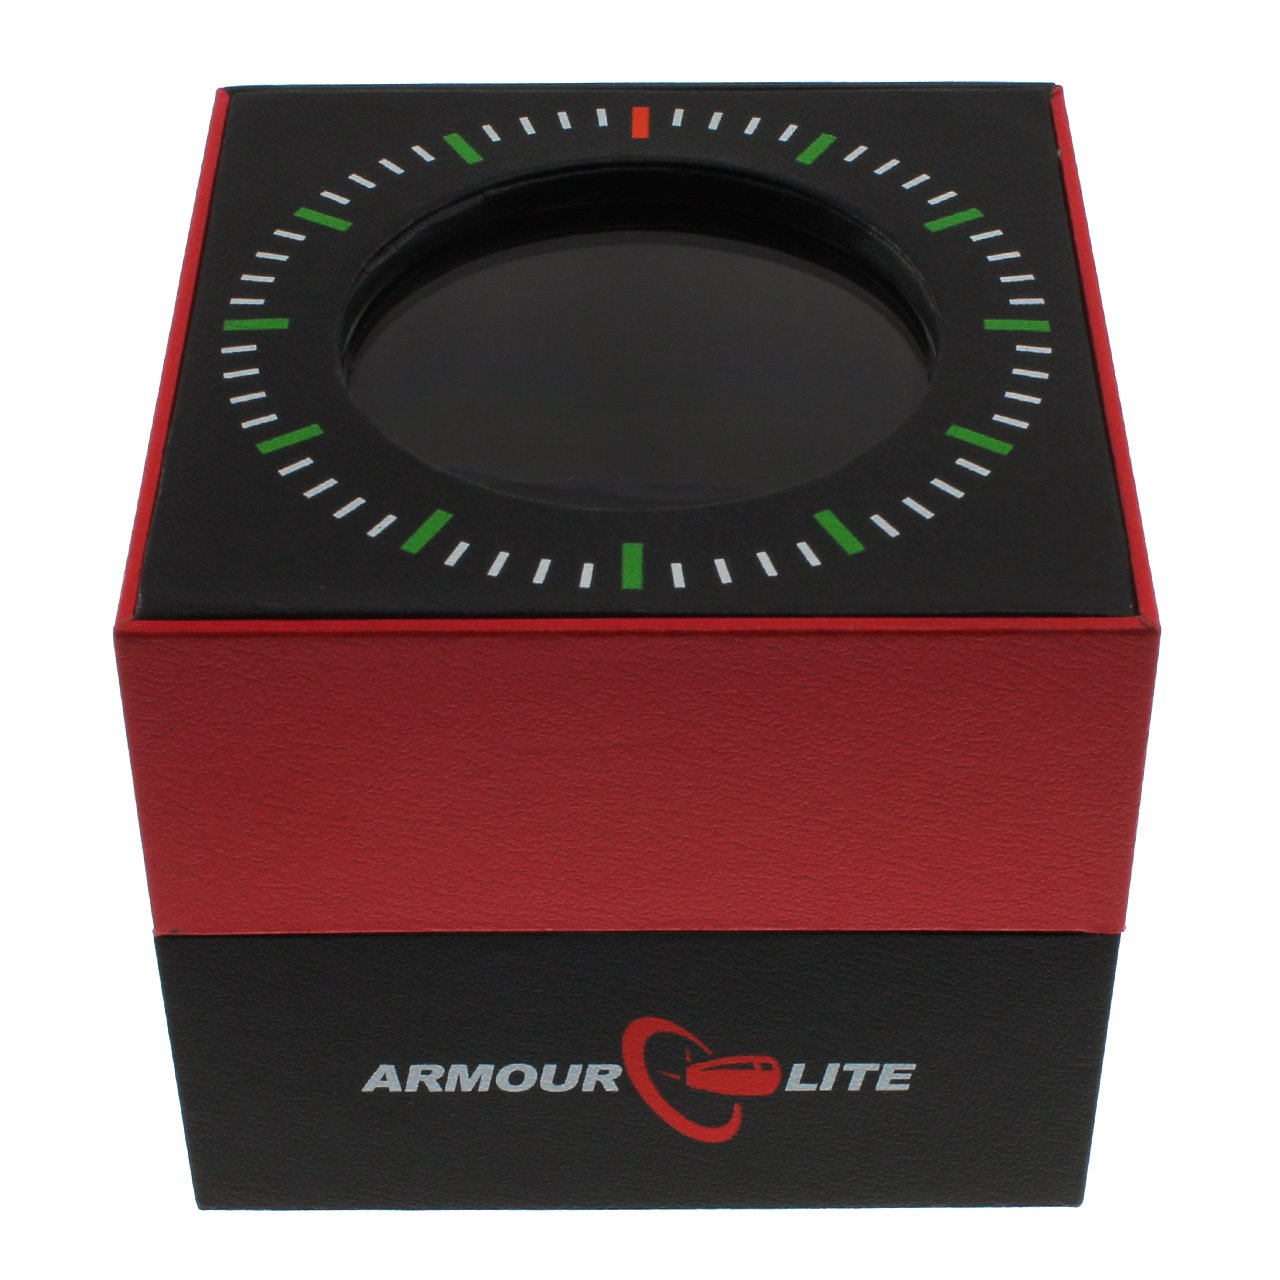 Armourlite Shatterproof Scratch Resistant High Impact Glass Tritium Chrono Watch by Armourlite